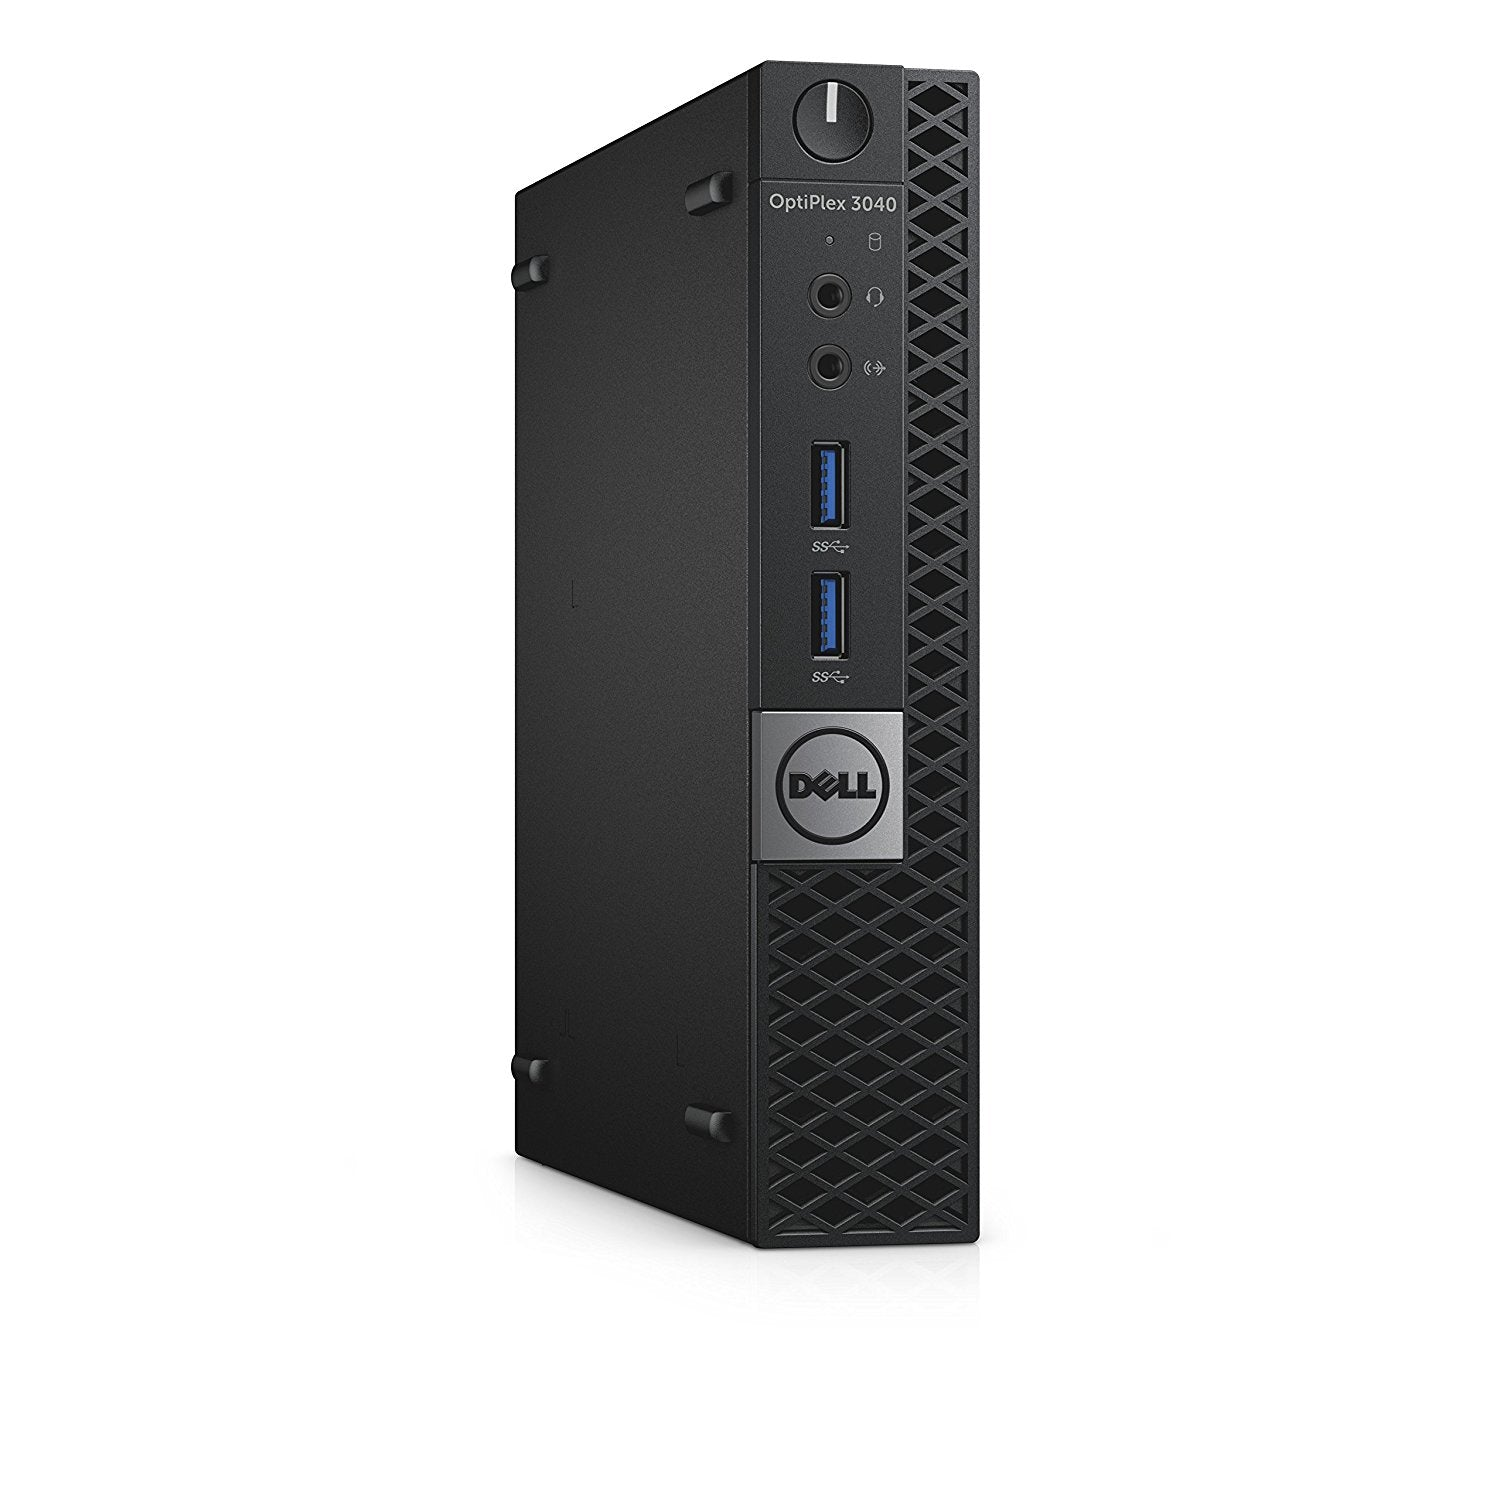 Dell OptiPlex 3040 MFF Micro Desktop 3.0 GHz Intel Core i3-6100T, 8 GB RAM, 500 GB HDD, Windows 10 Home